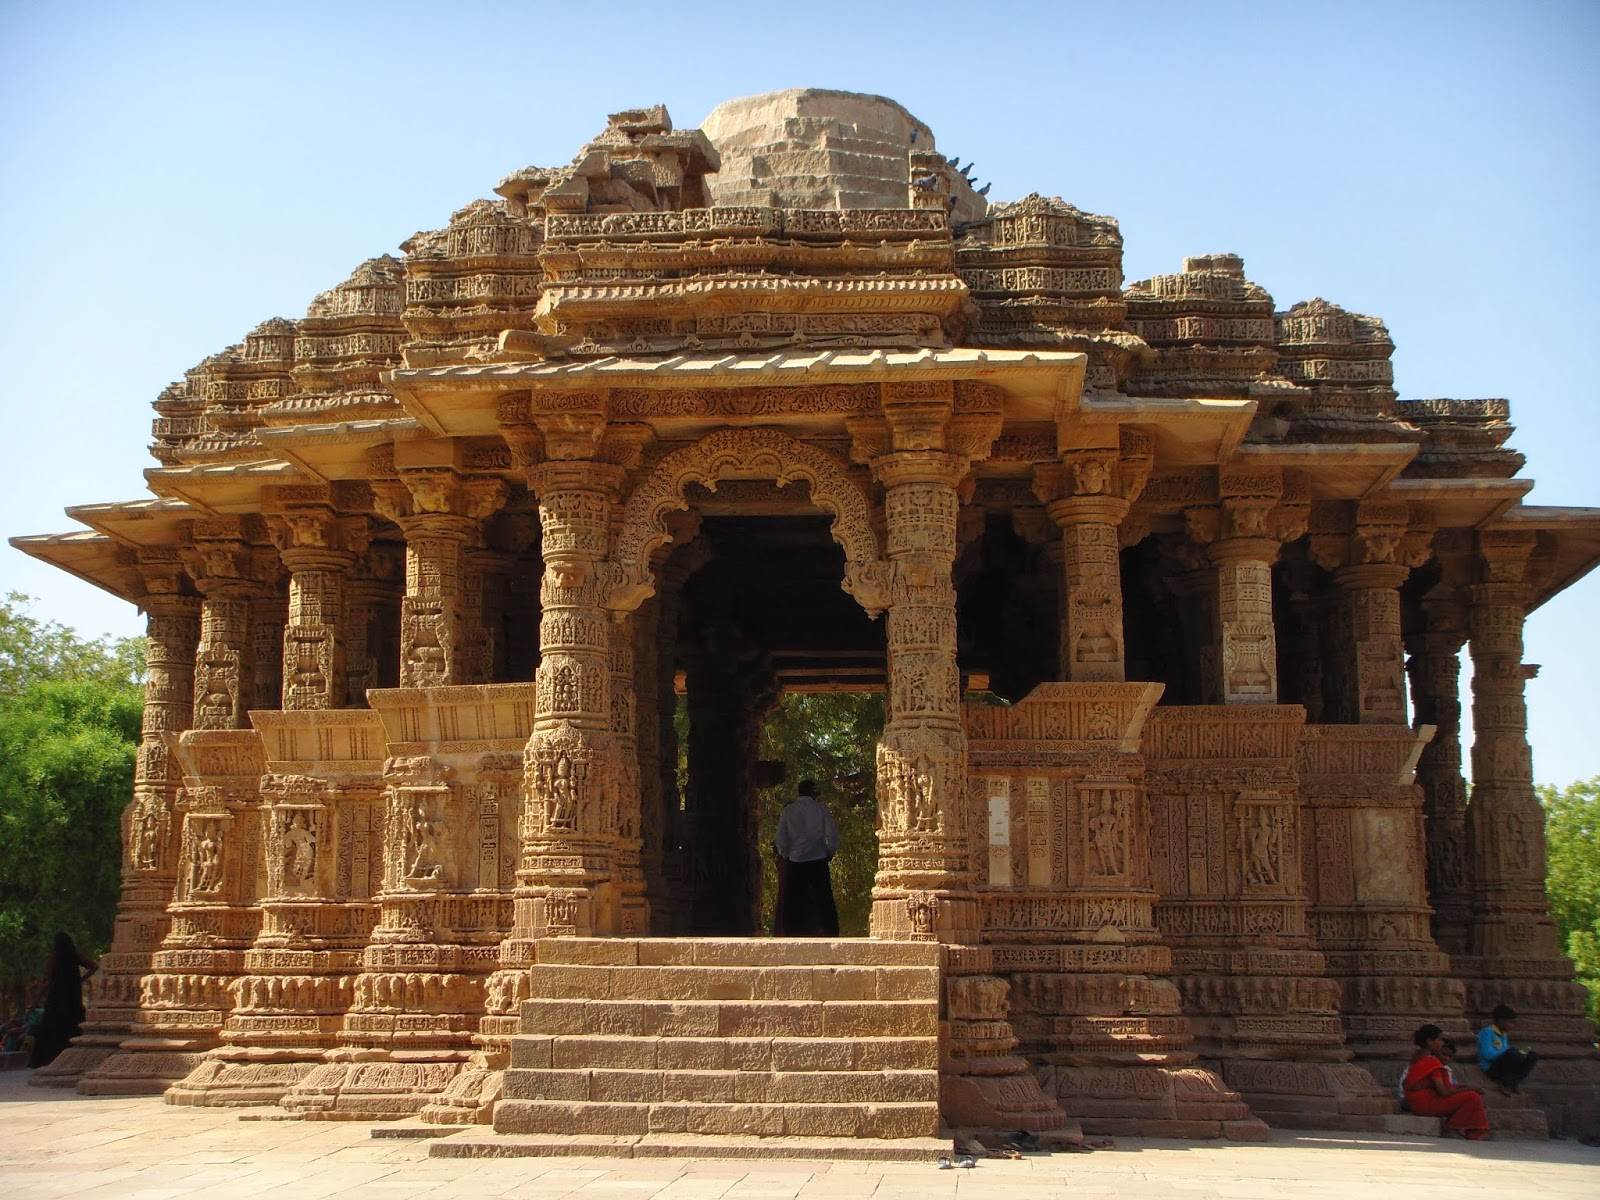 temples of gujarat Posts about temples in gujarat written by mapsofindia1.